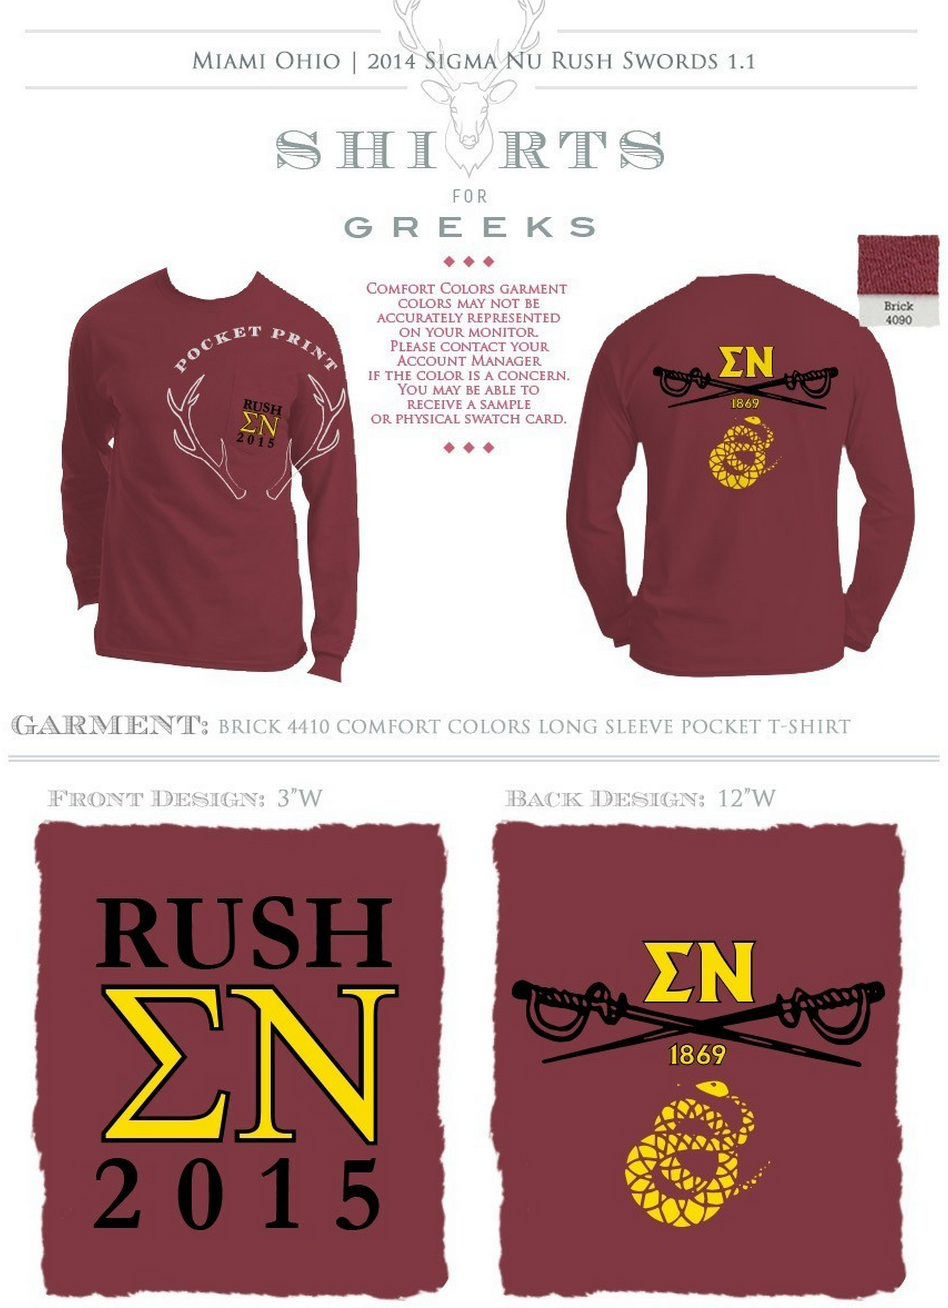 sigma nu | greek life | rush | fraternity designs | tshirts